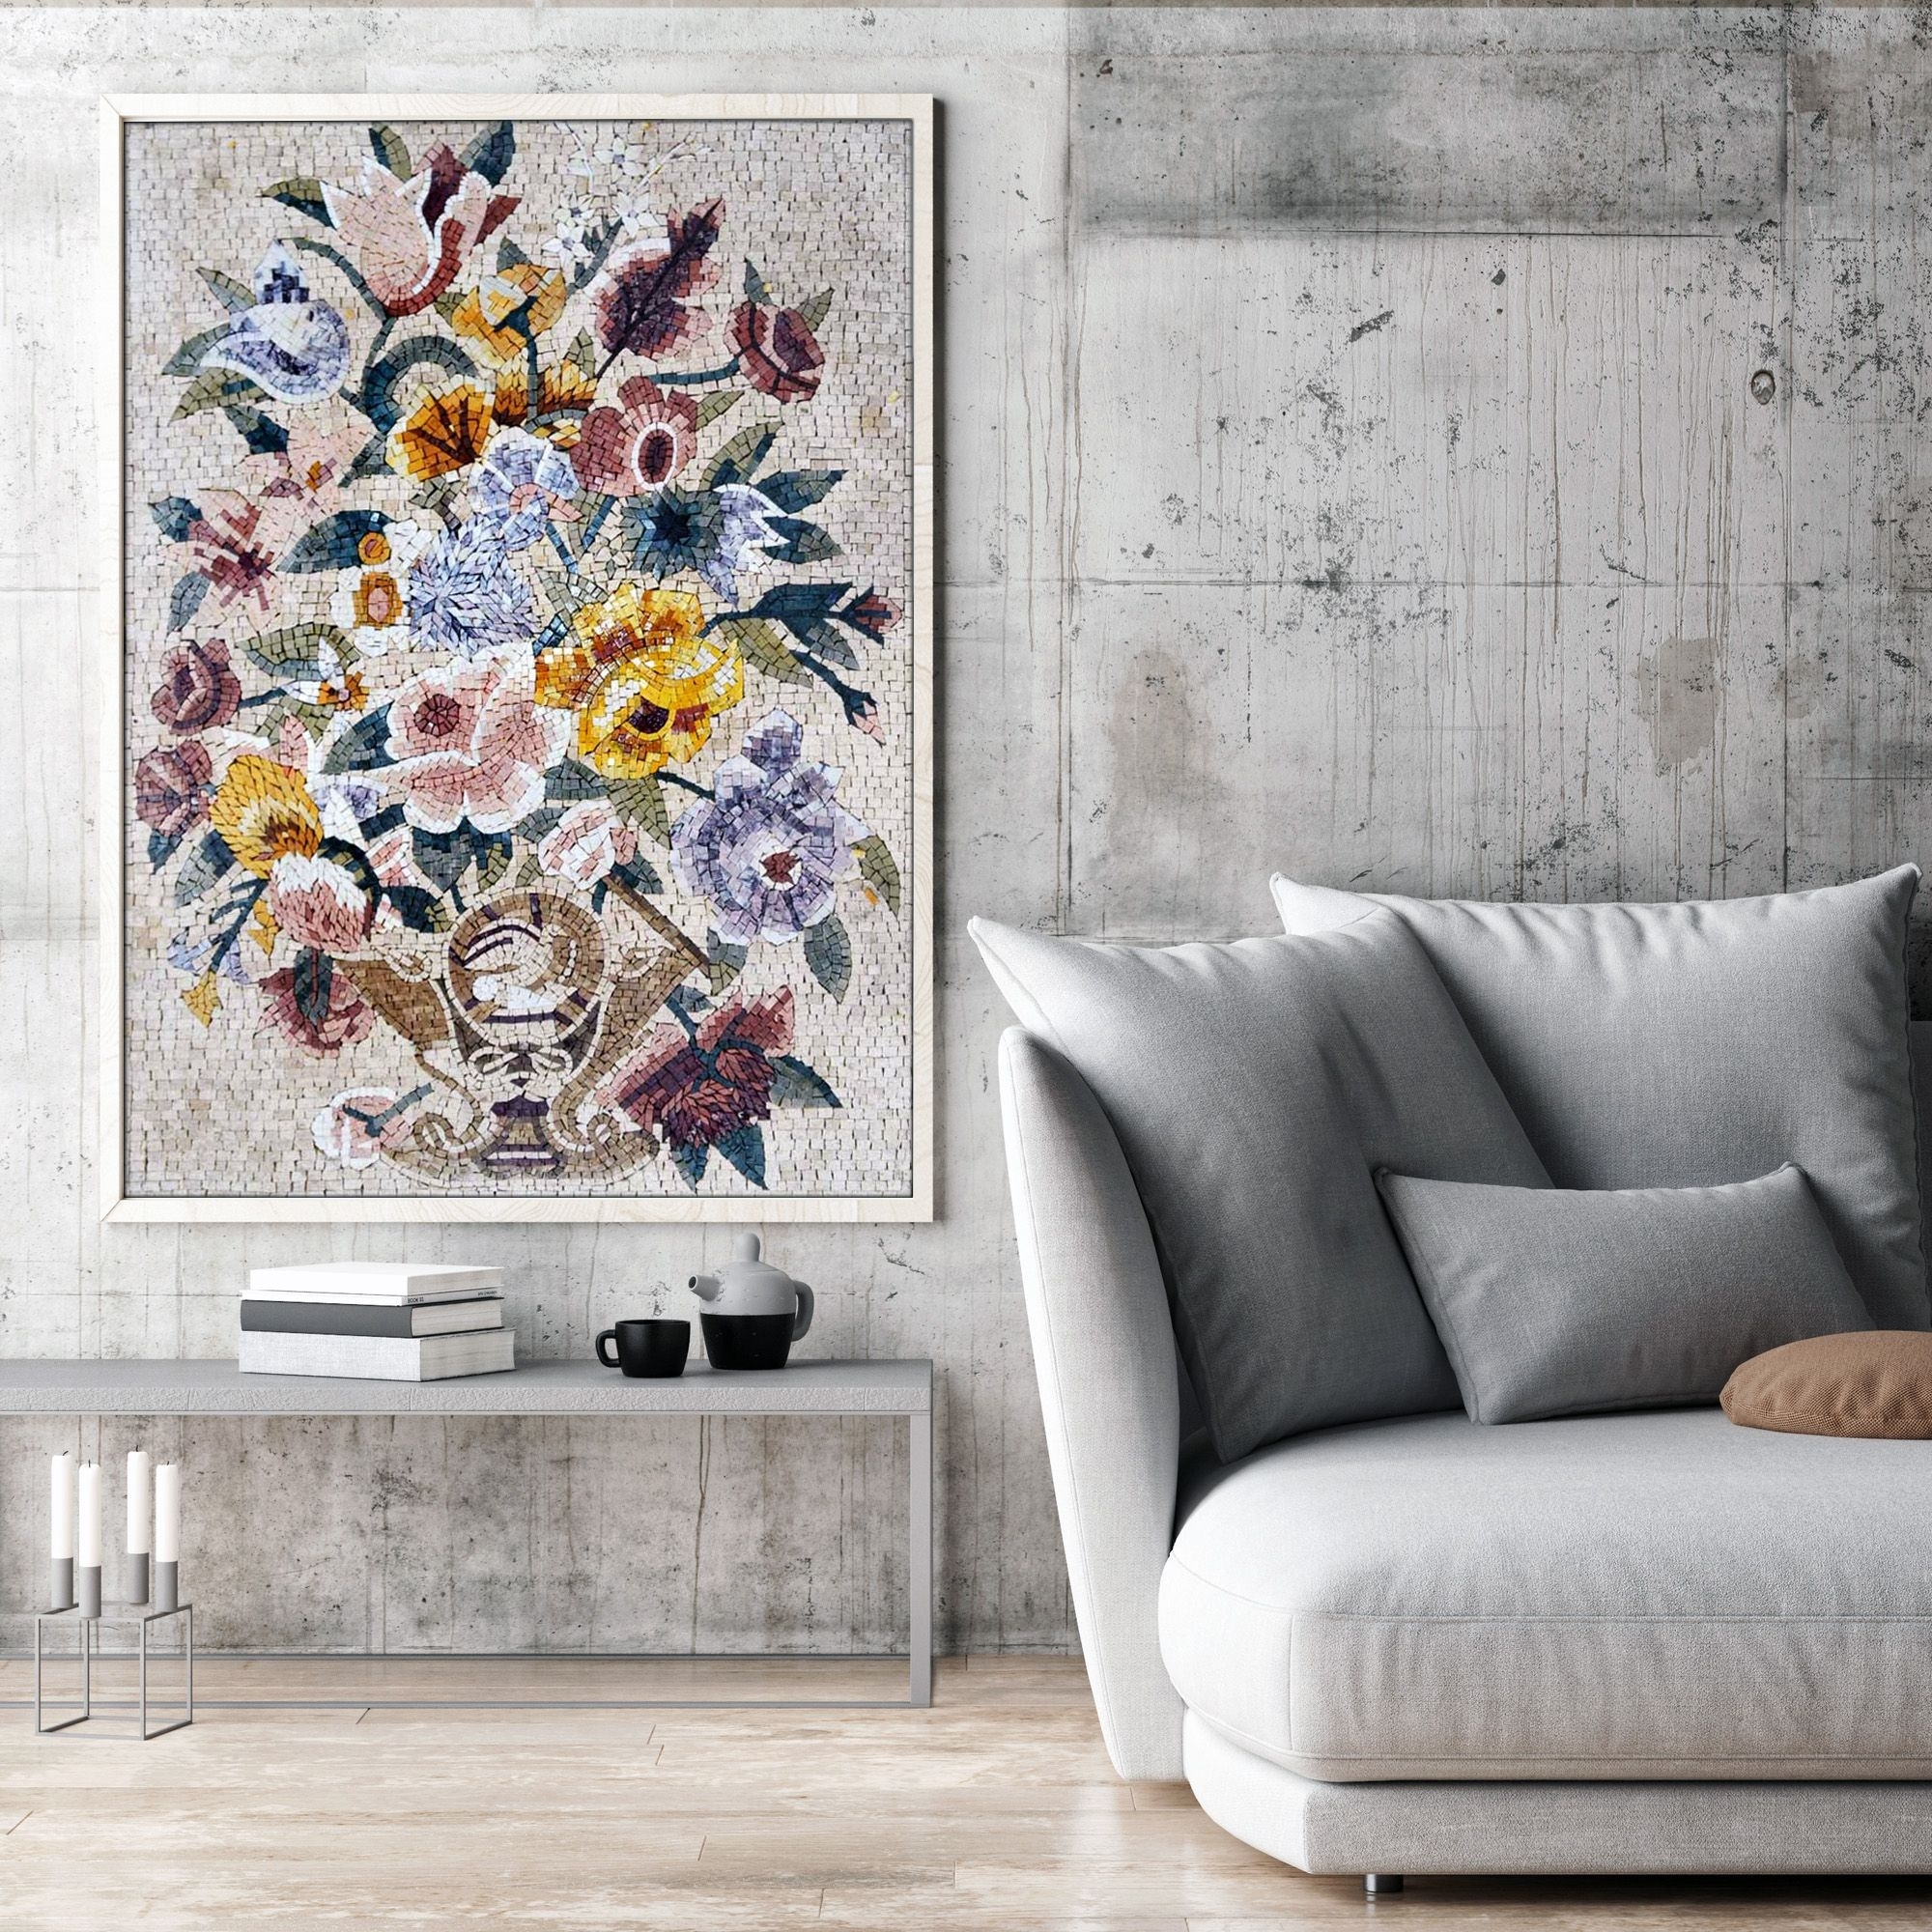 Unique Ways To Decorate Your Home With Mosaic Wall Art | Mosaic inside Mosaic Wall Art (Image 19 of 20)